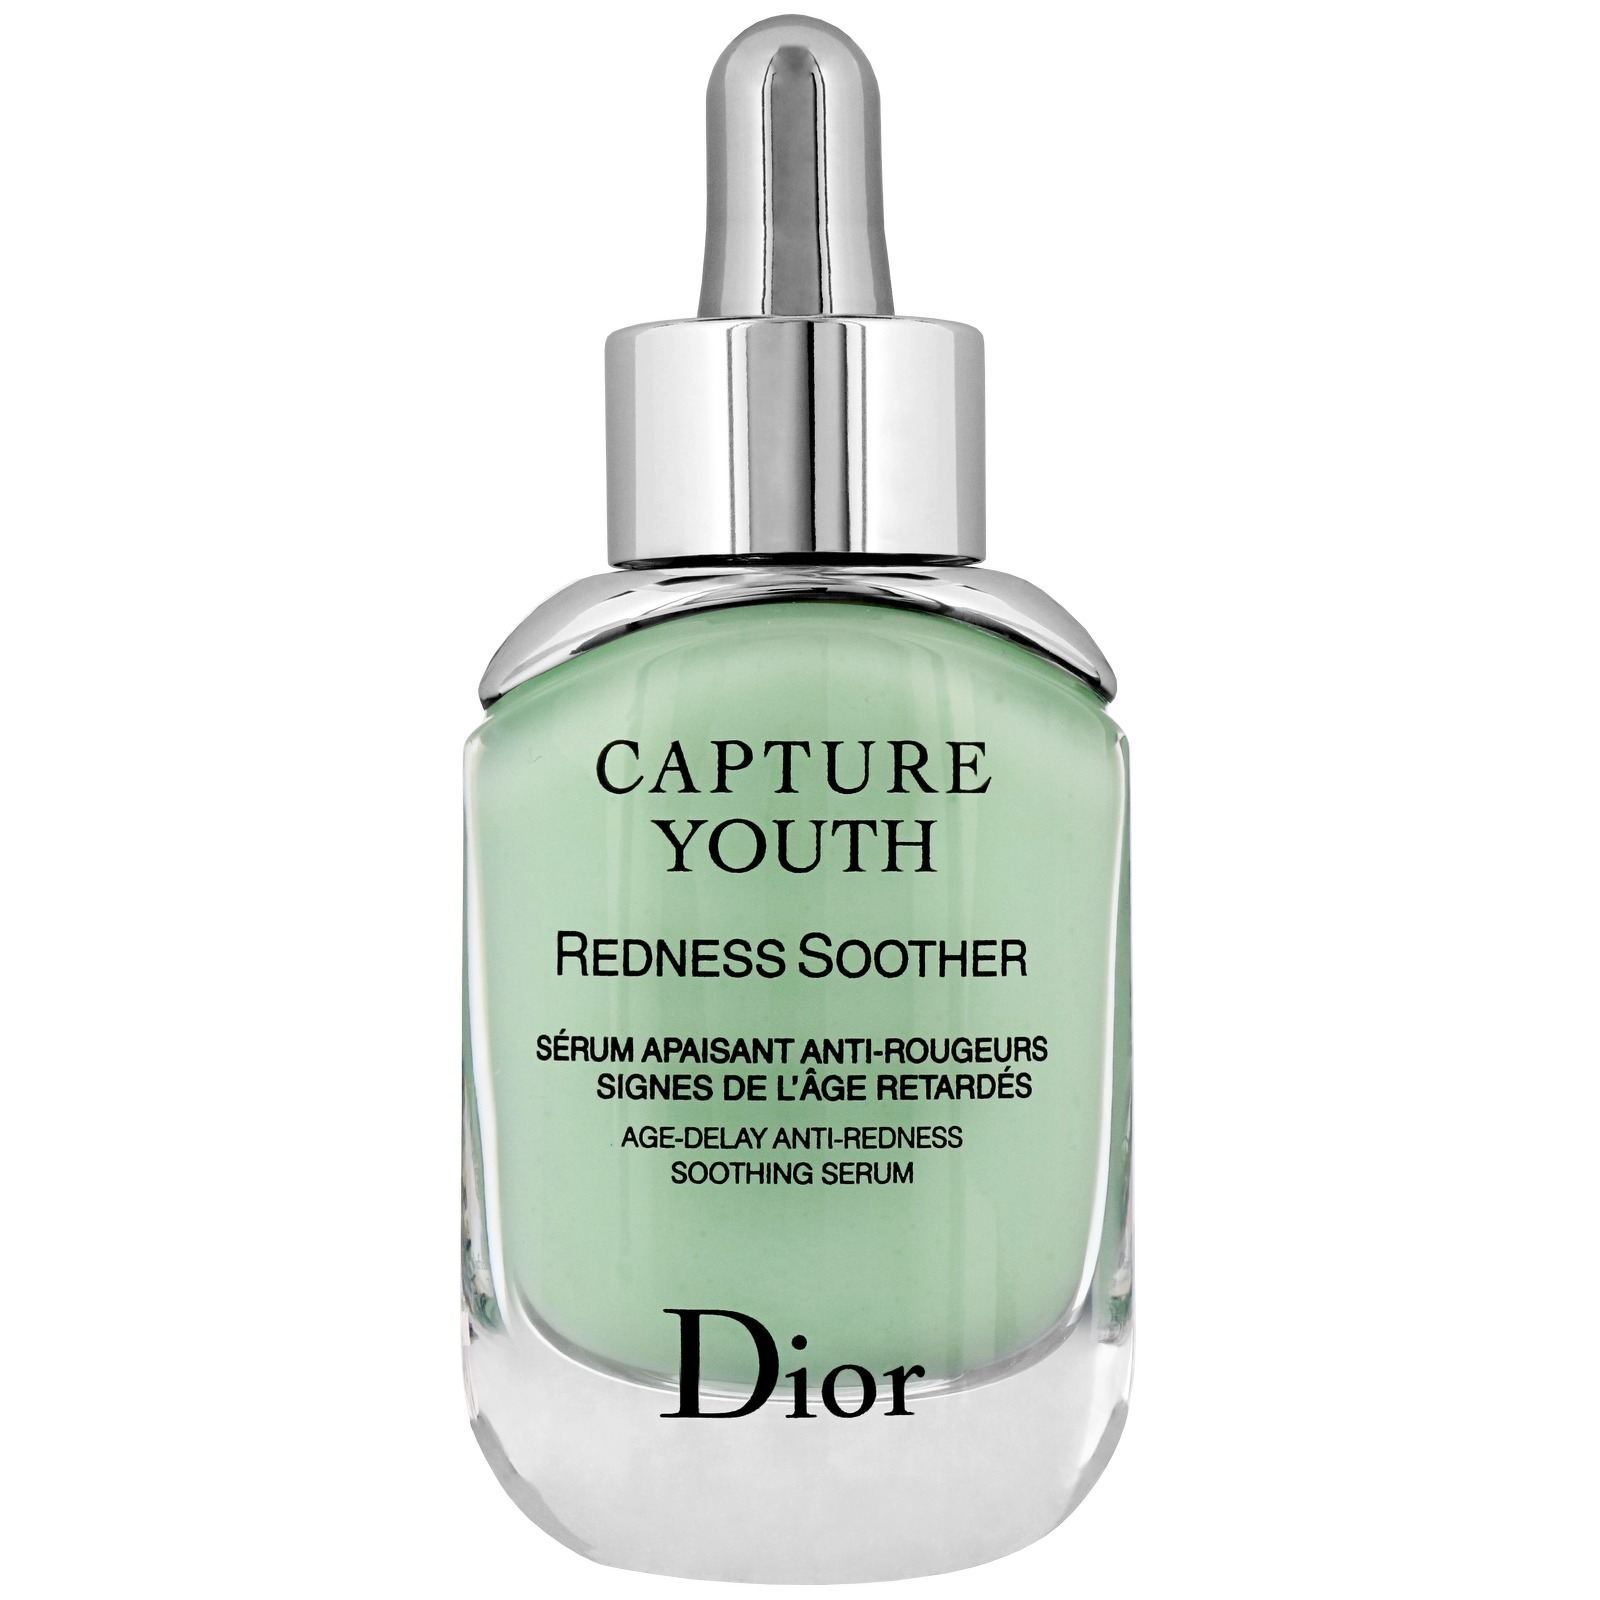 Dior Capture Youth Rossore succhietto siero 30ml